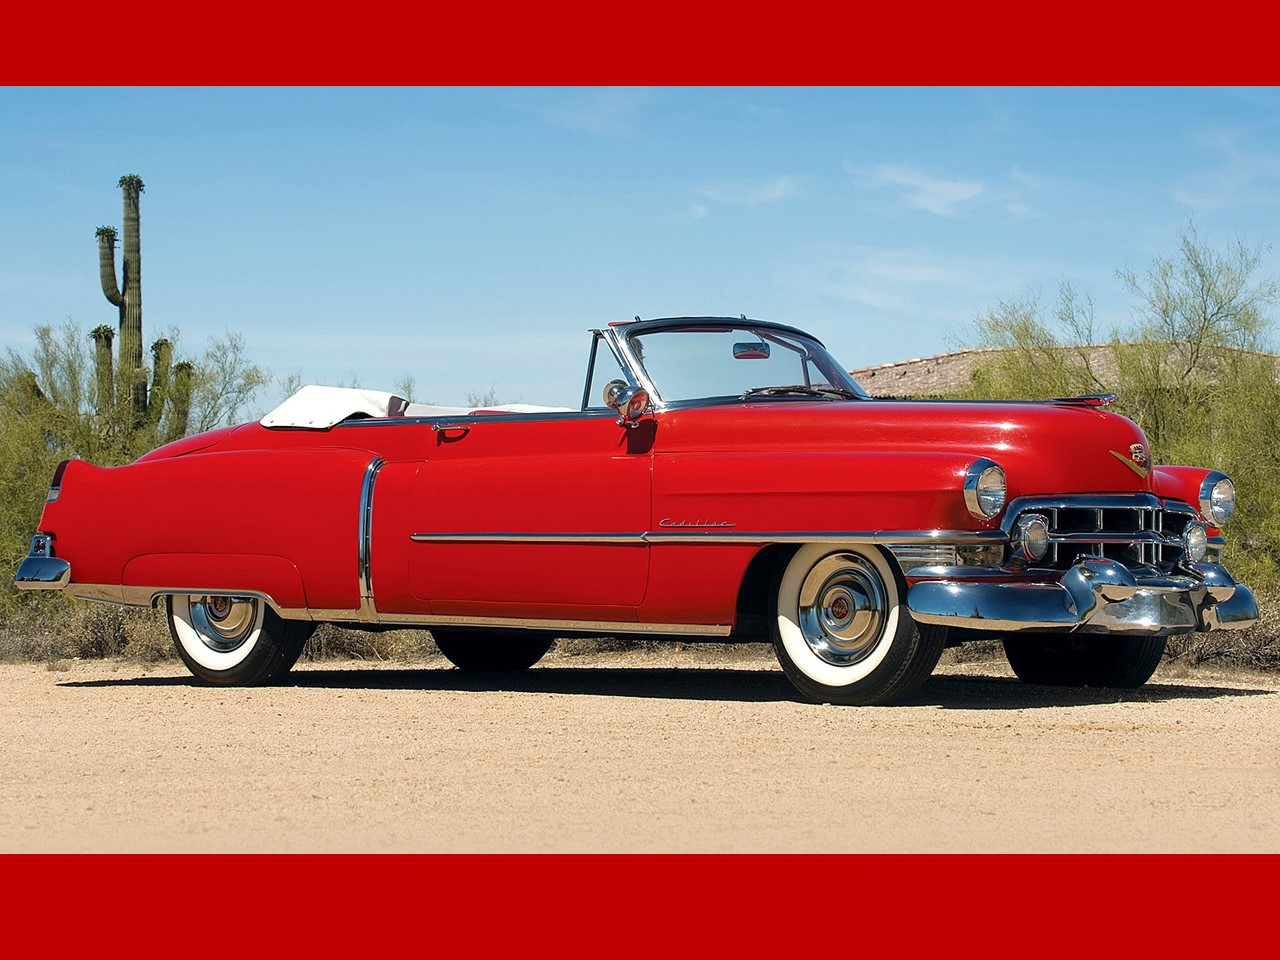 1950 Cadillac Sixty-two Convertible